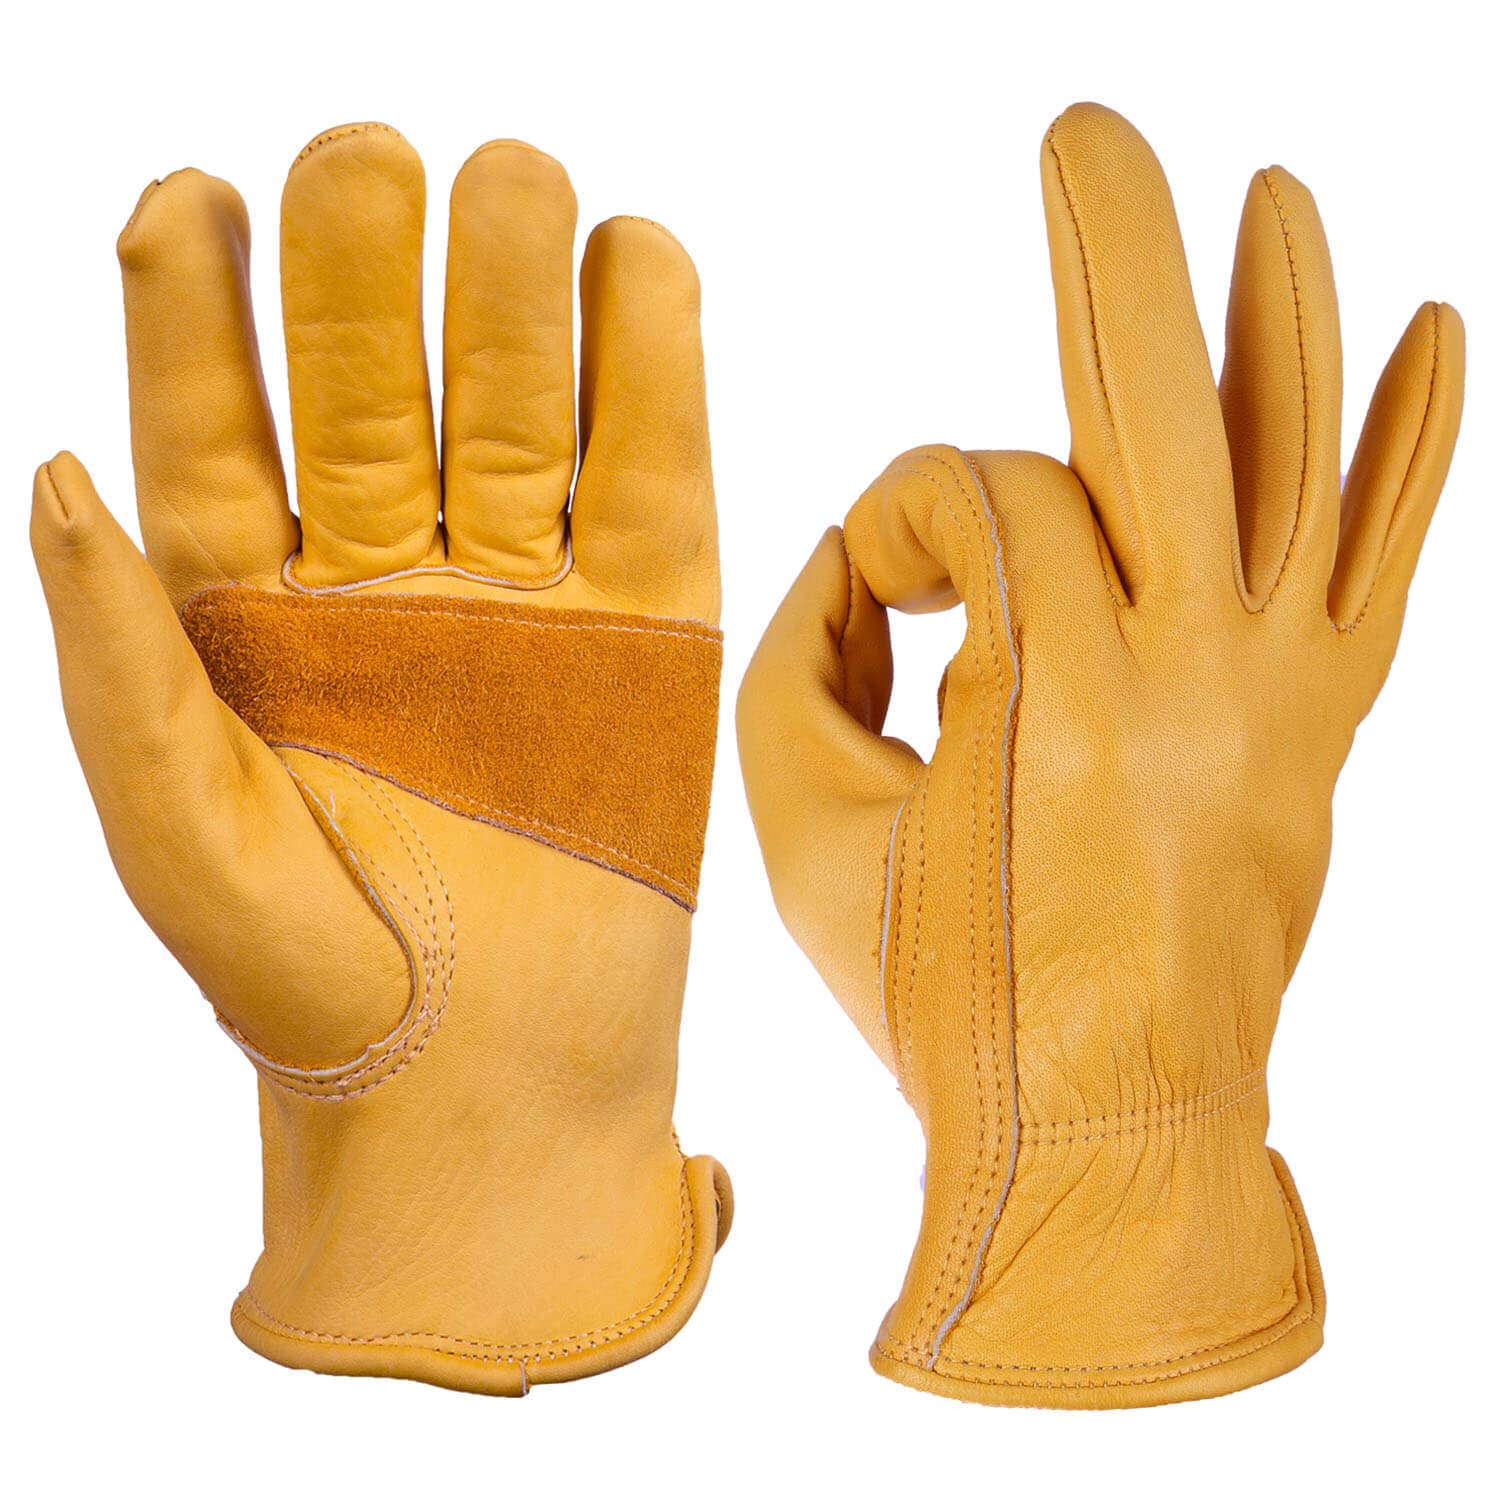 OZERO Flex Grip Leather Work Gloves Stretchable Tough Cowhide Working Glove 1 Pair (Gold, Medium)